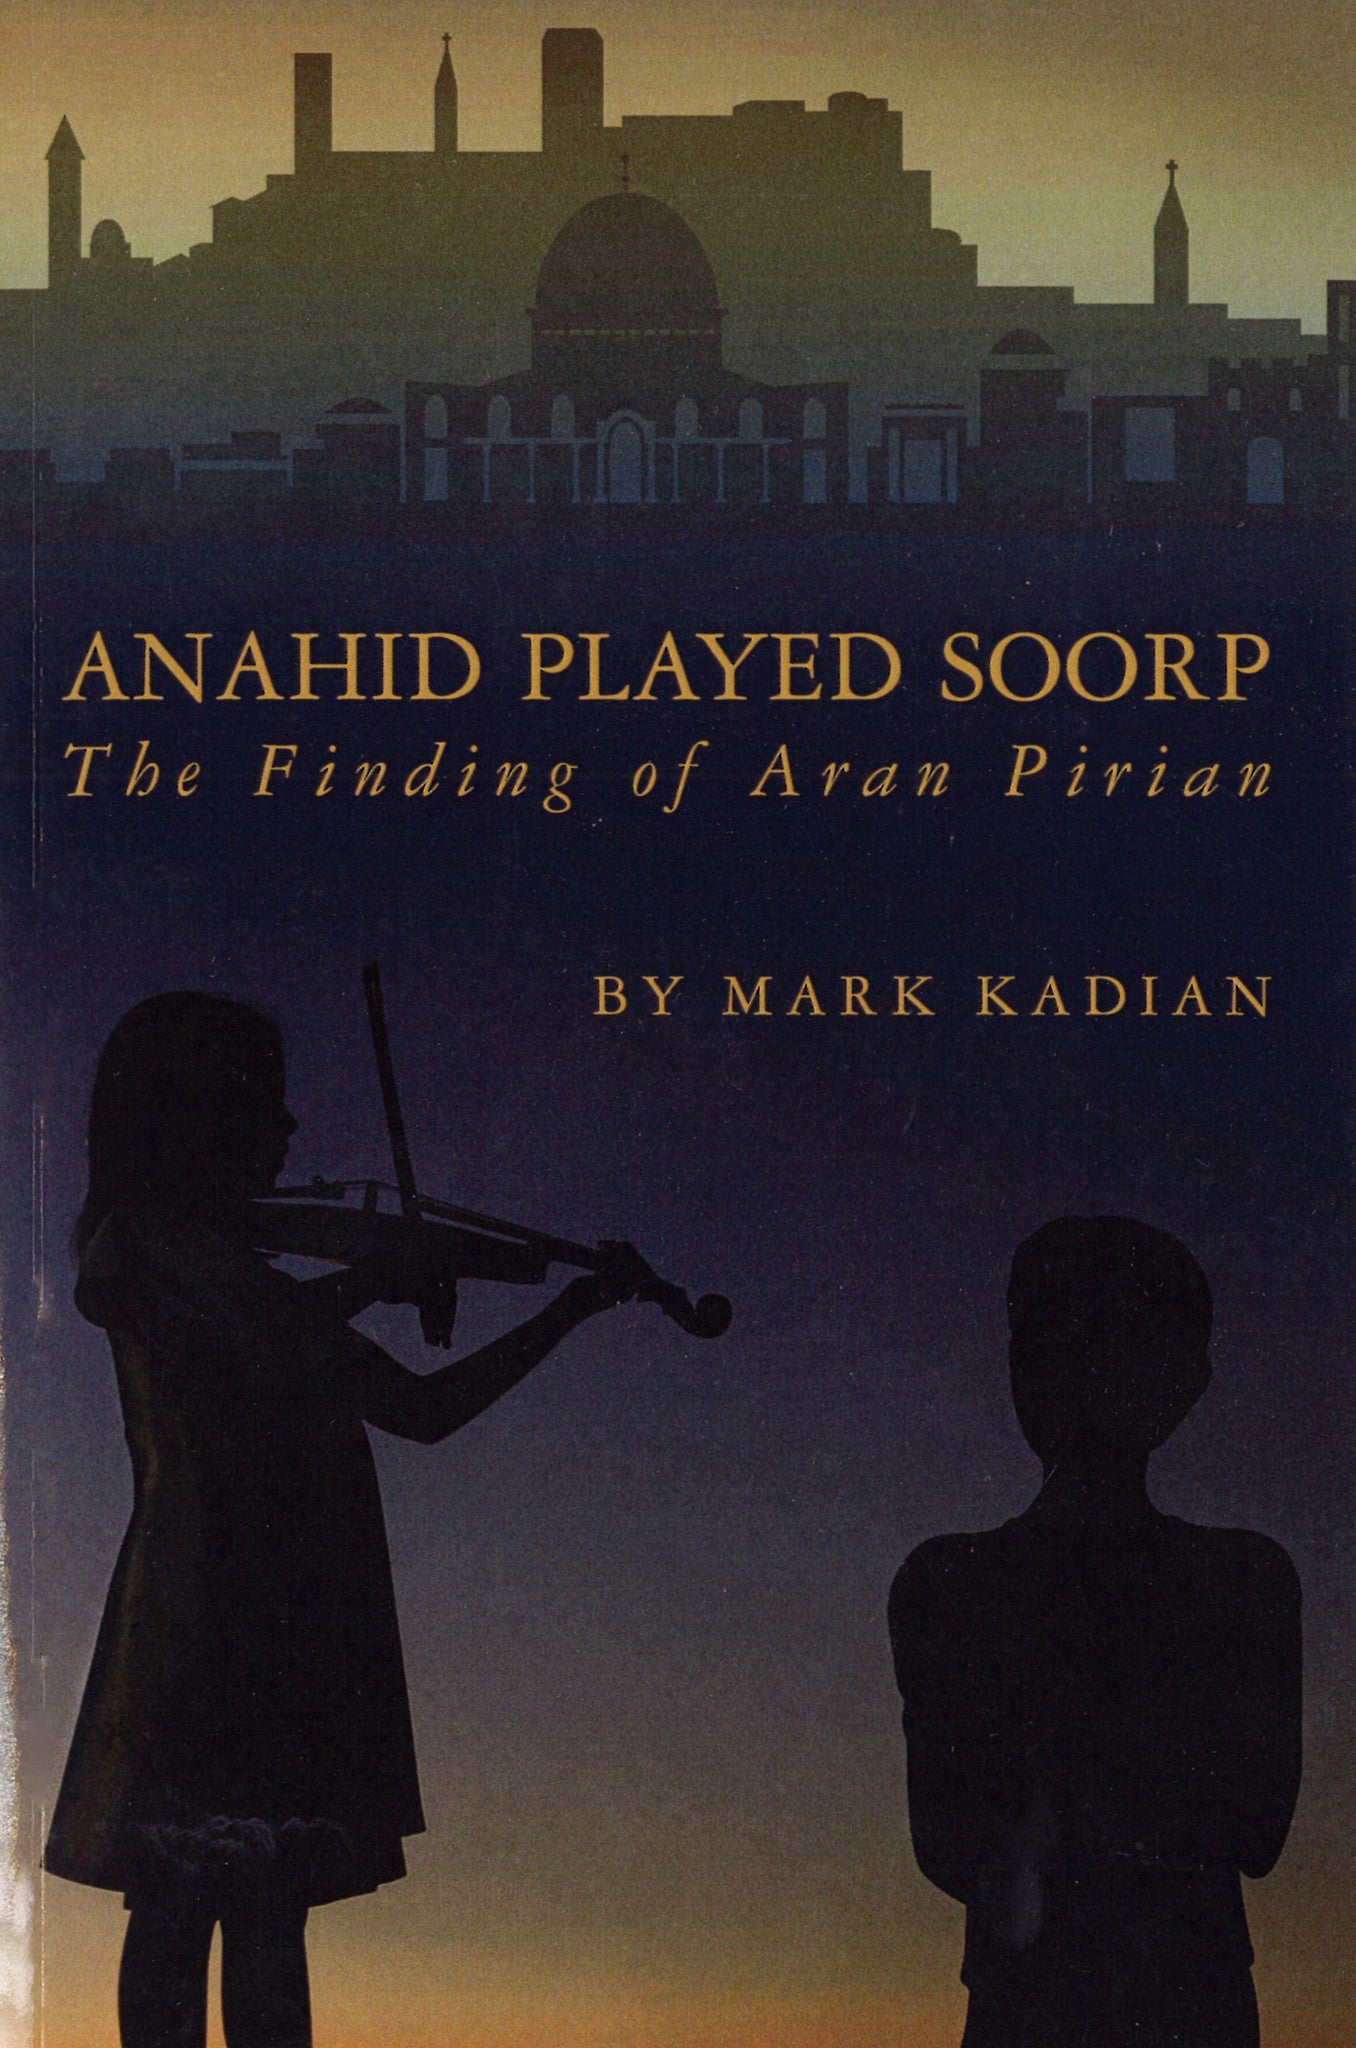 ANAHID PLAYED SOORP: THE FINDING OF ARAN PIRIAN